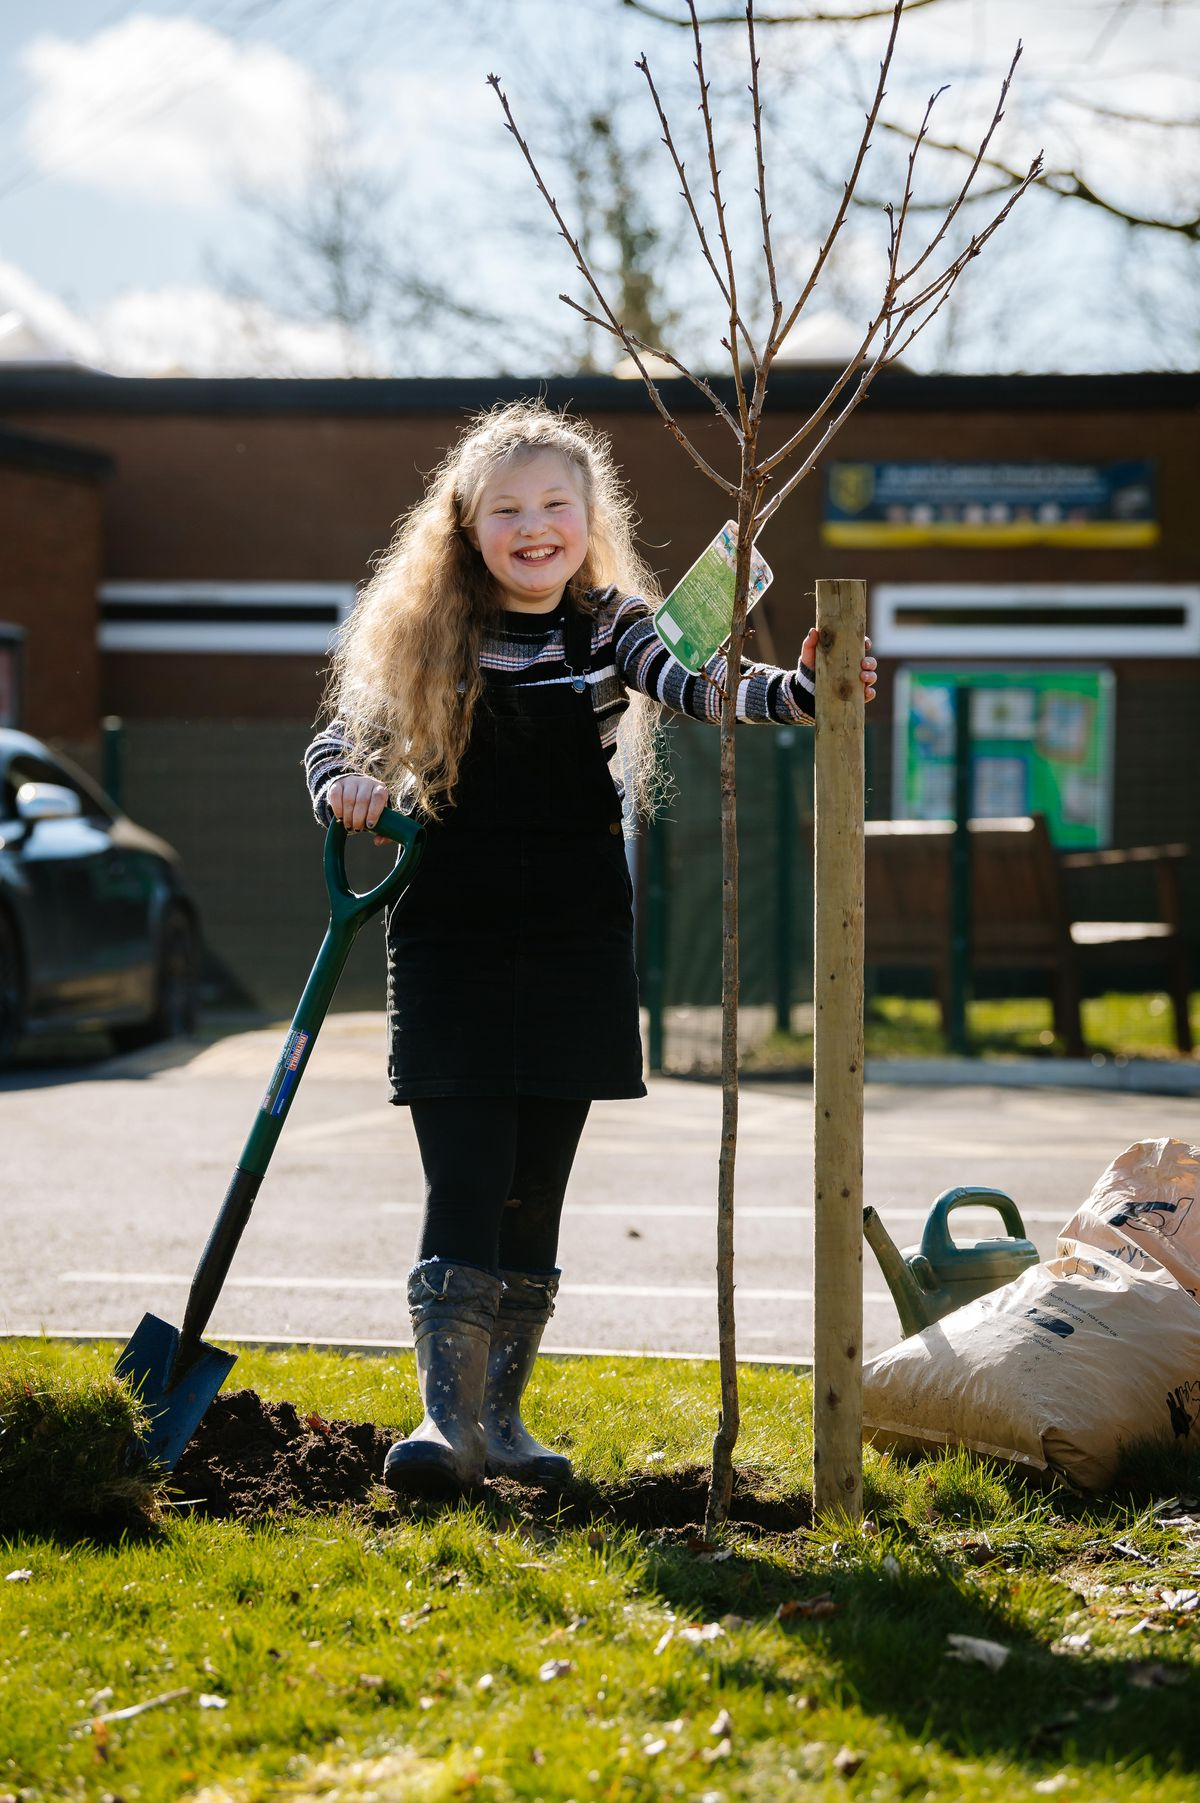 Lara Neal, 10, planted her first tree at St Johns RC Primary School in Bridgnorth